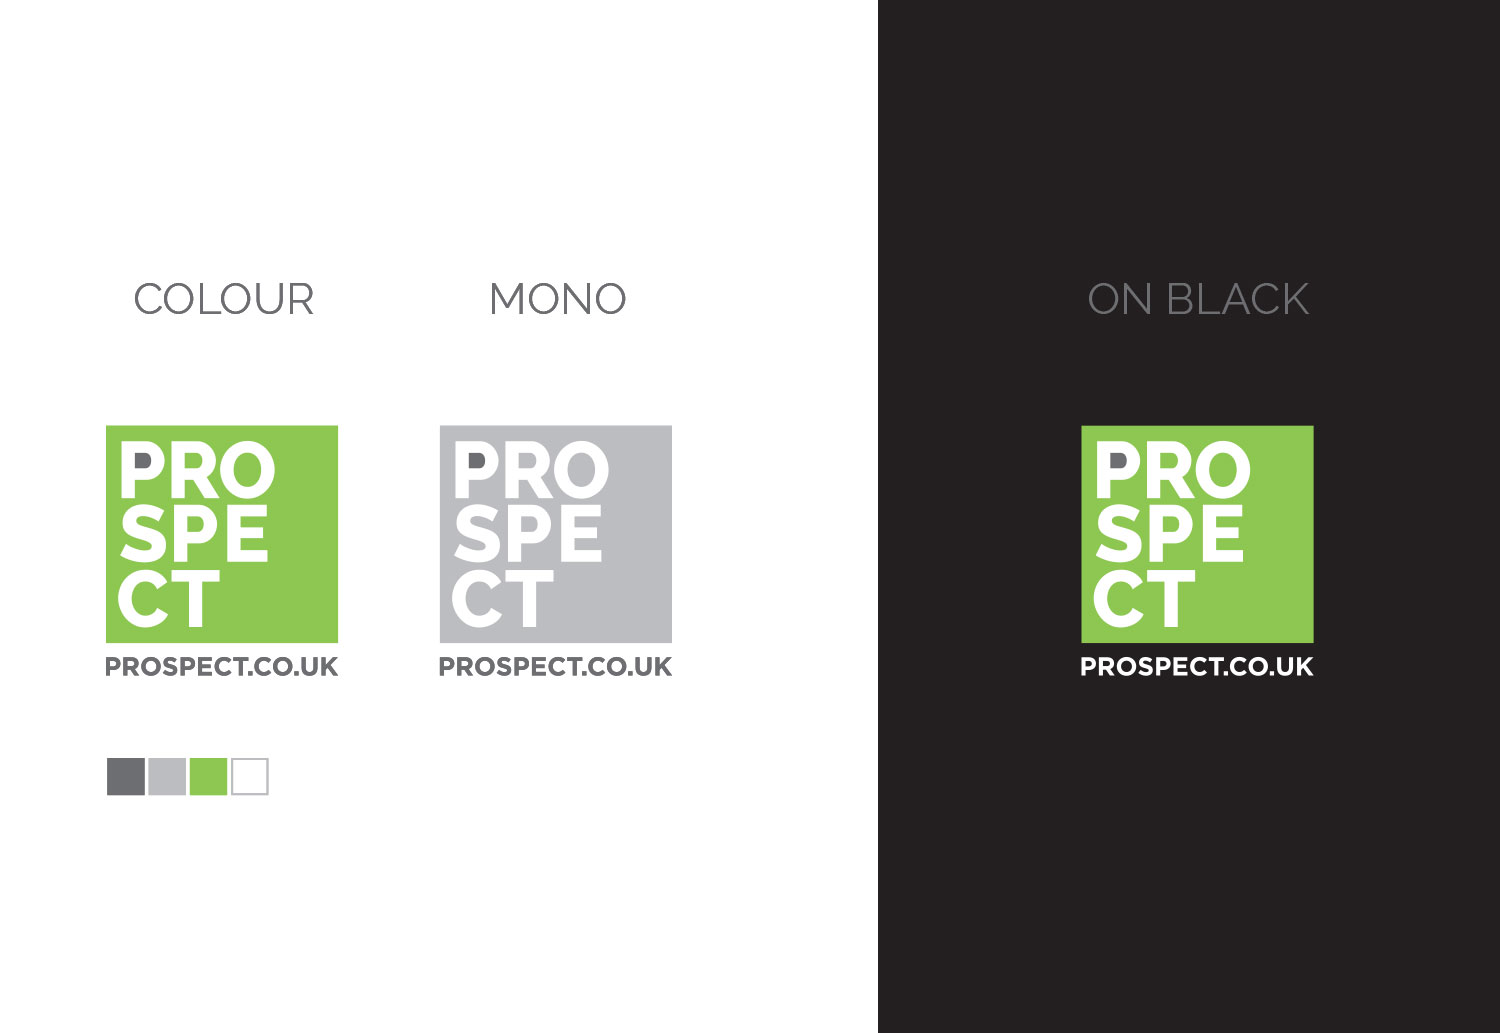 Final logo concepts for the Prospect brand